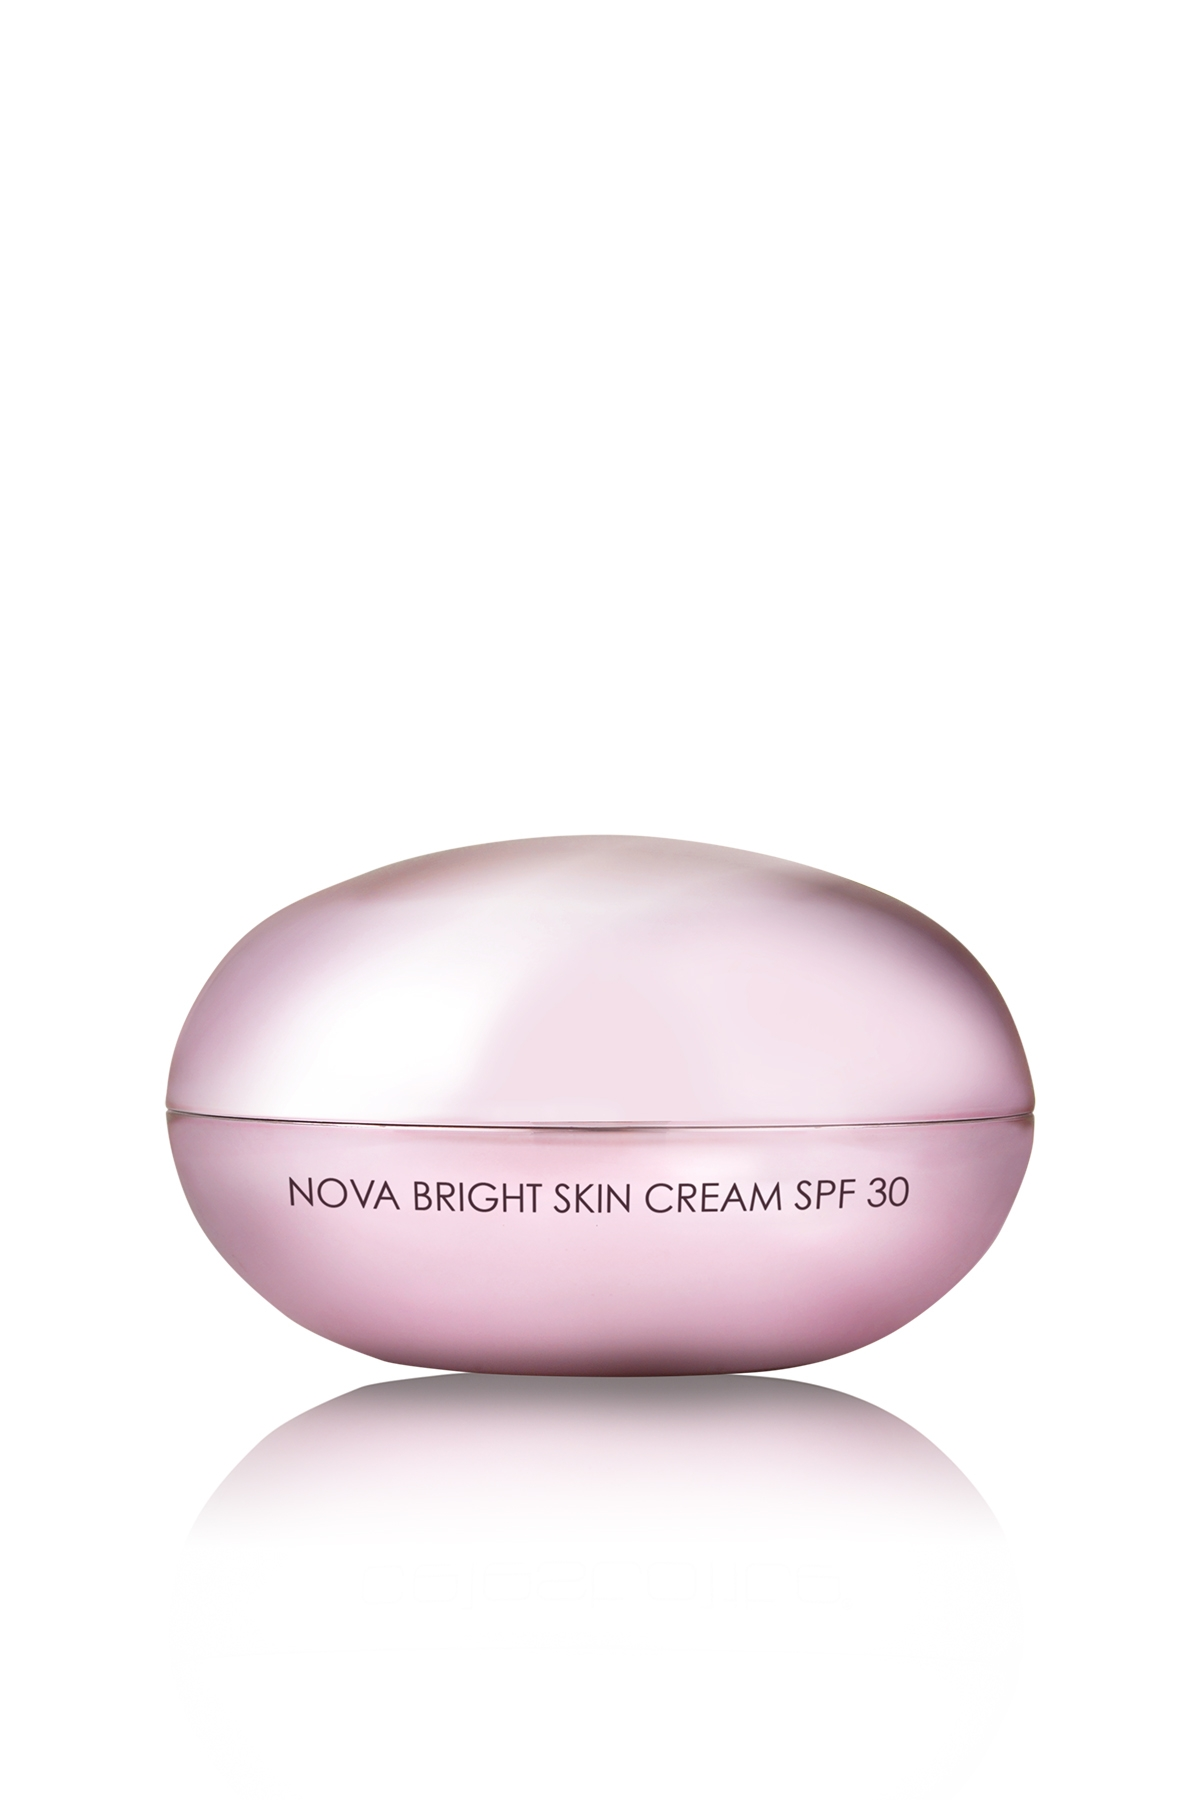 Nova Bright Skin Cream-SPF 30 Jar